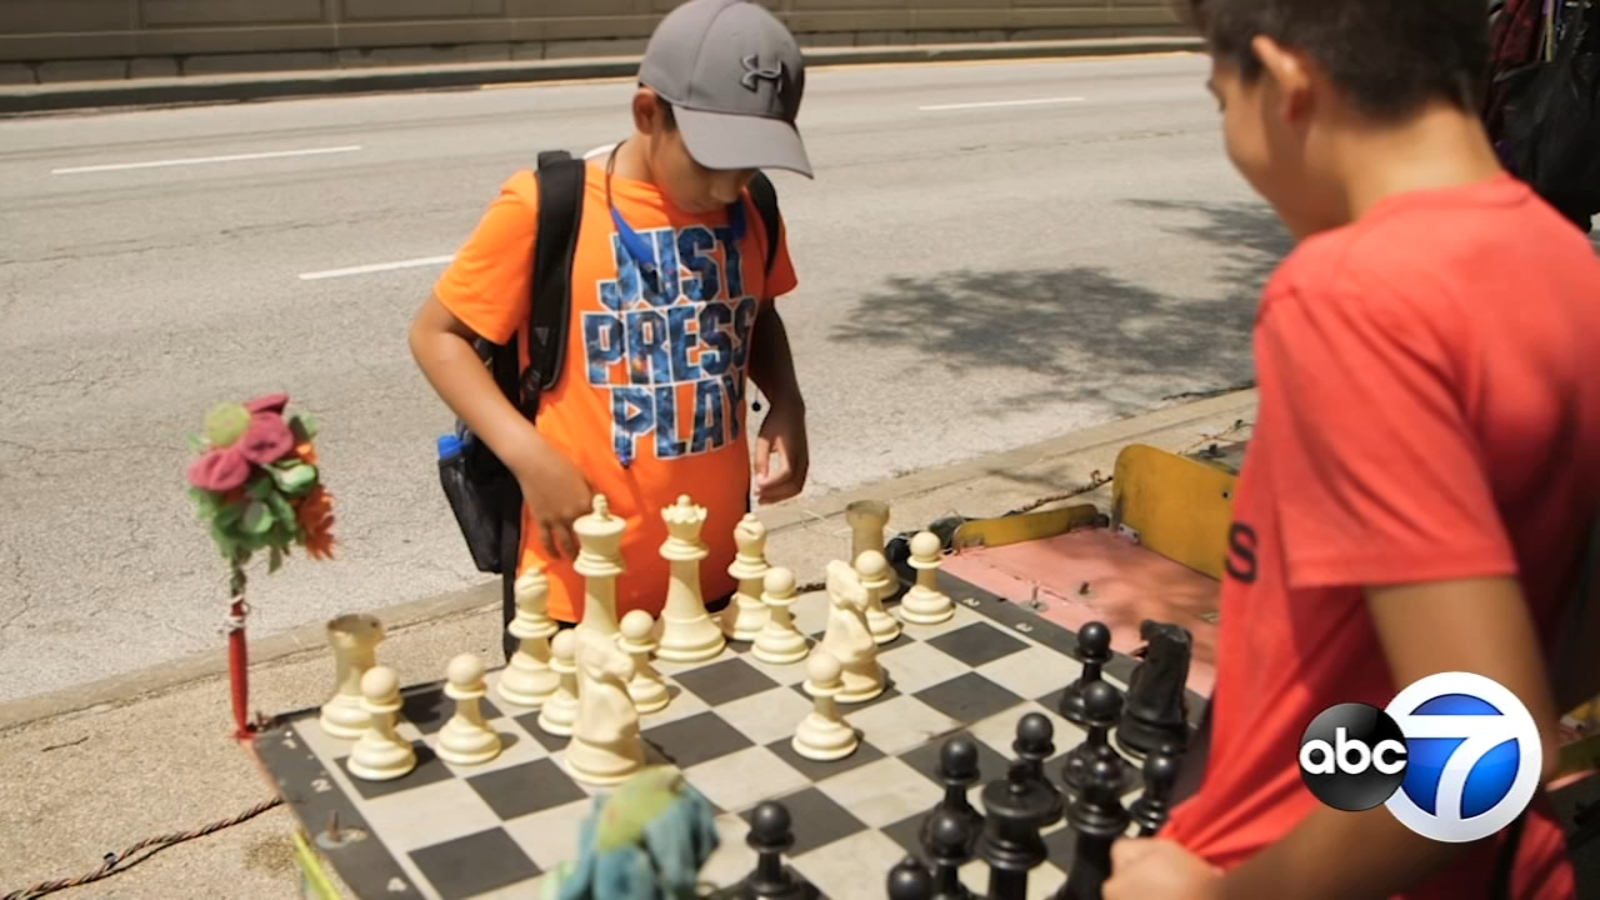 South Side artist brings street chess to downtown Chicago